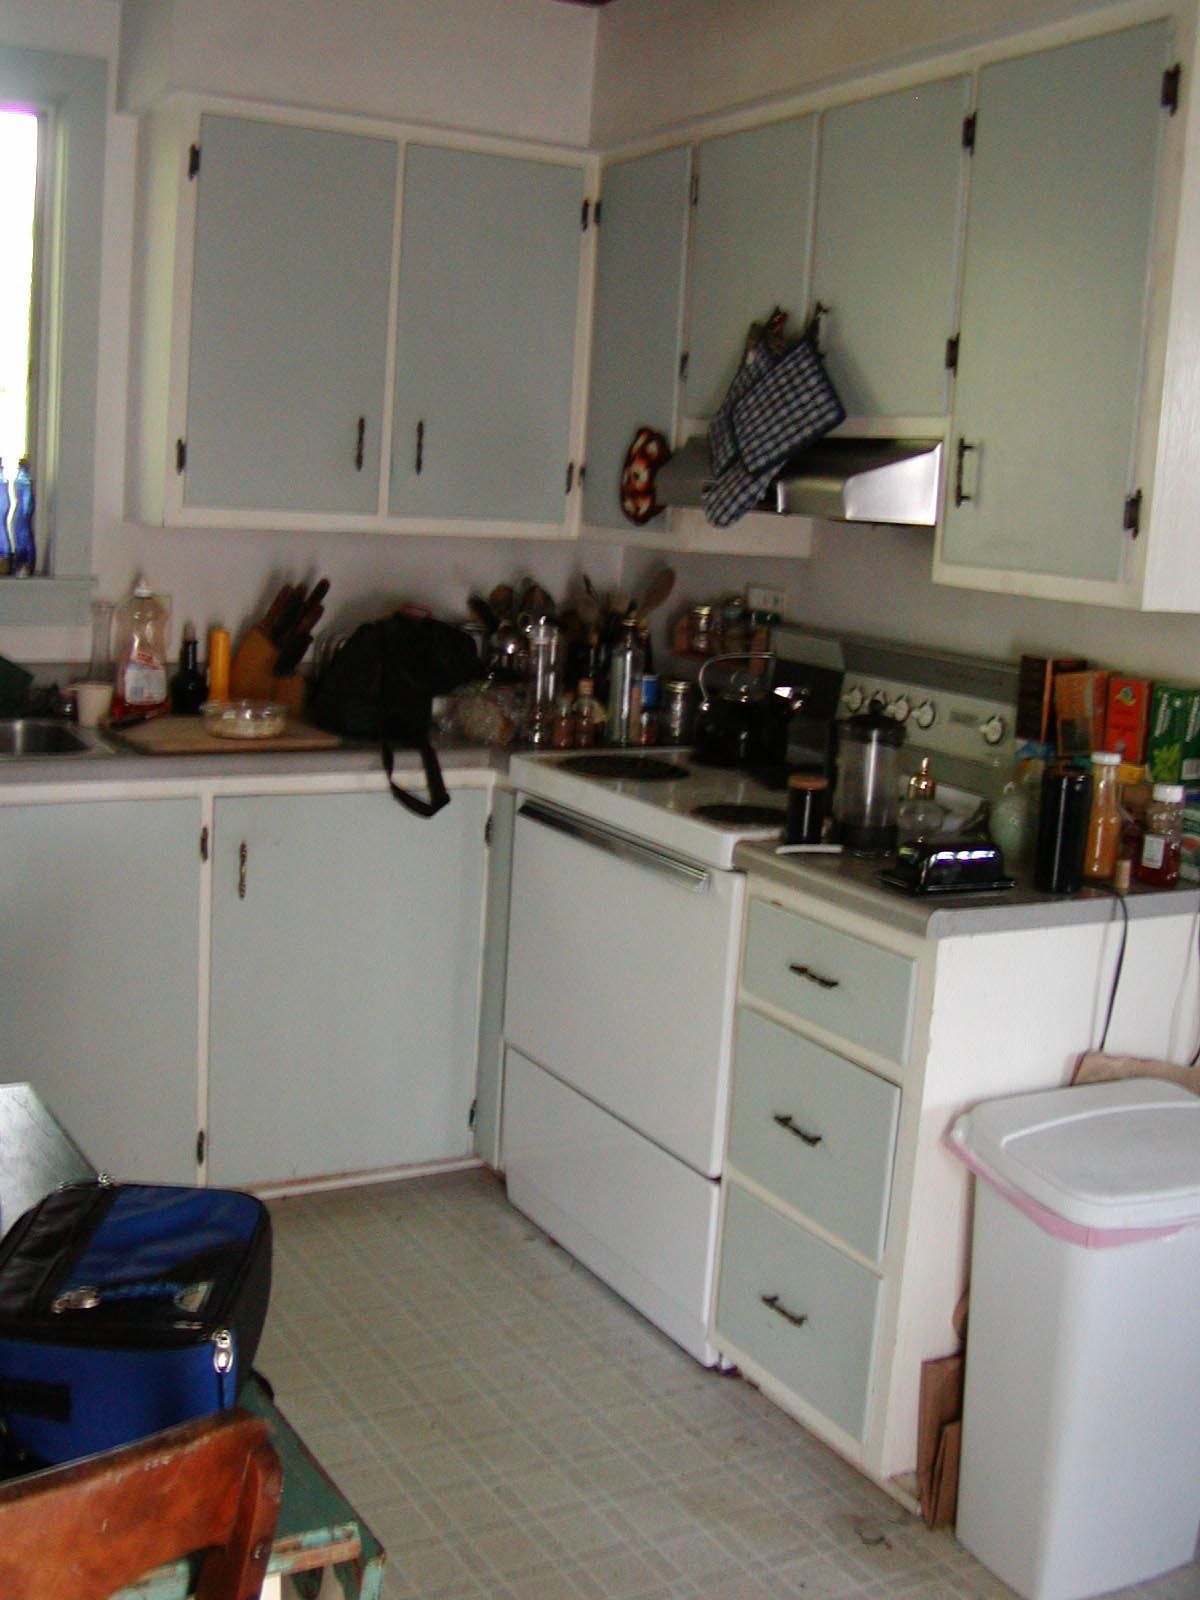 Update Kitchen Cabinets Without Replacing Them By Adding Trim And Diy Kitchen Cabinet Carcass Storage Update Kitchen Cabinets Diy Kitchen Cabinets Diy Kitchen